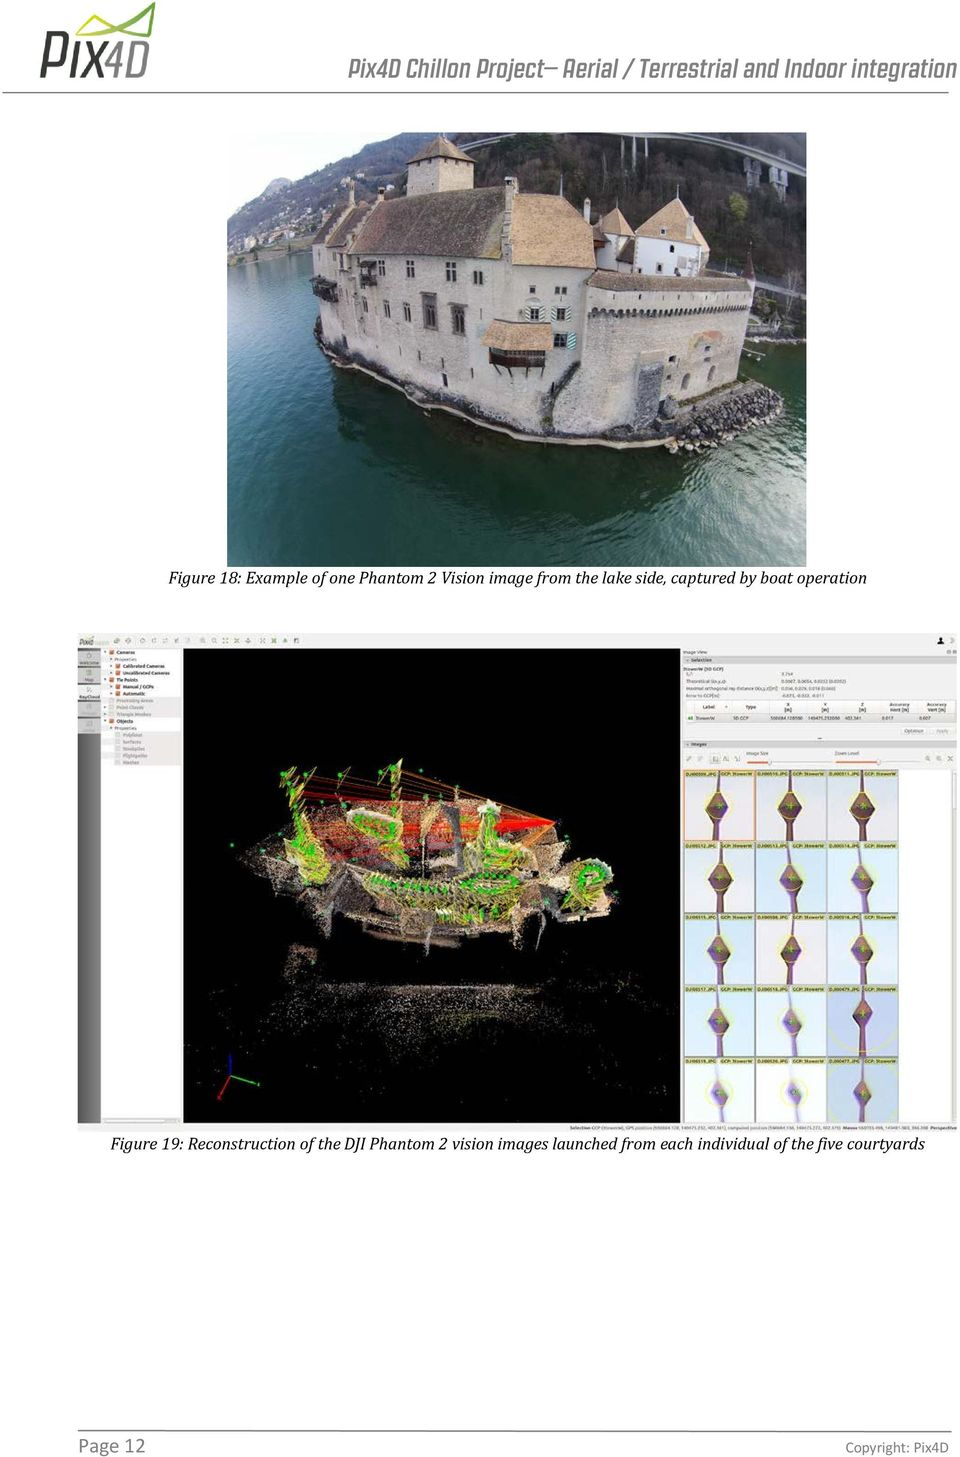 Reconstruction of the DJI Phantom 2 vision images